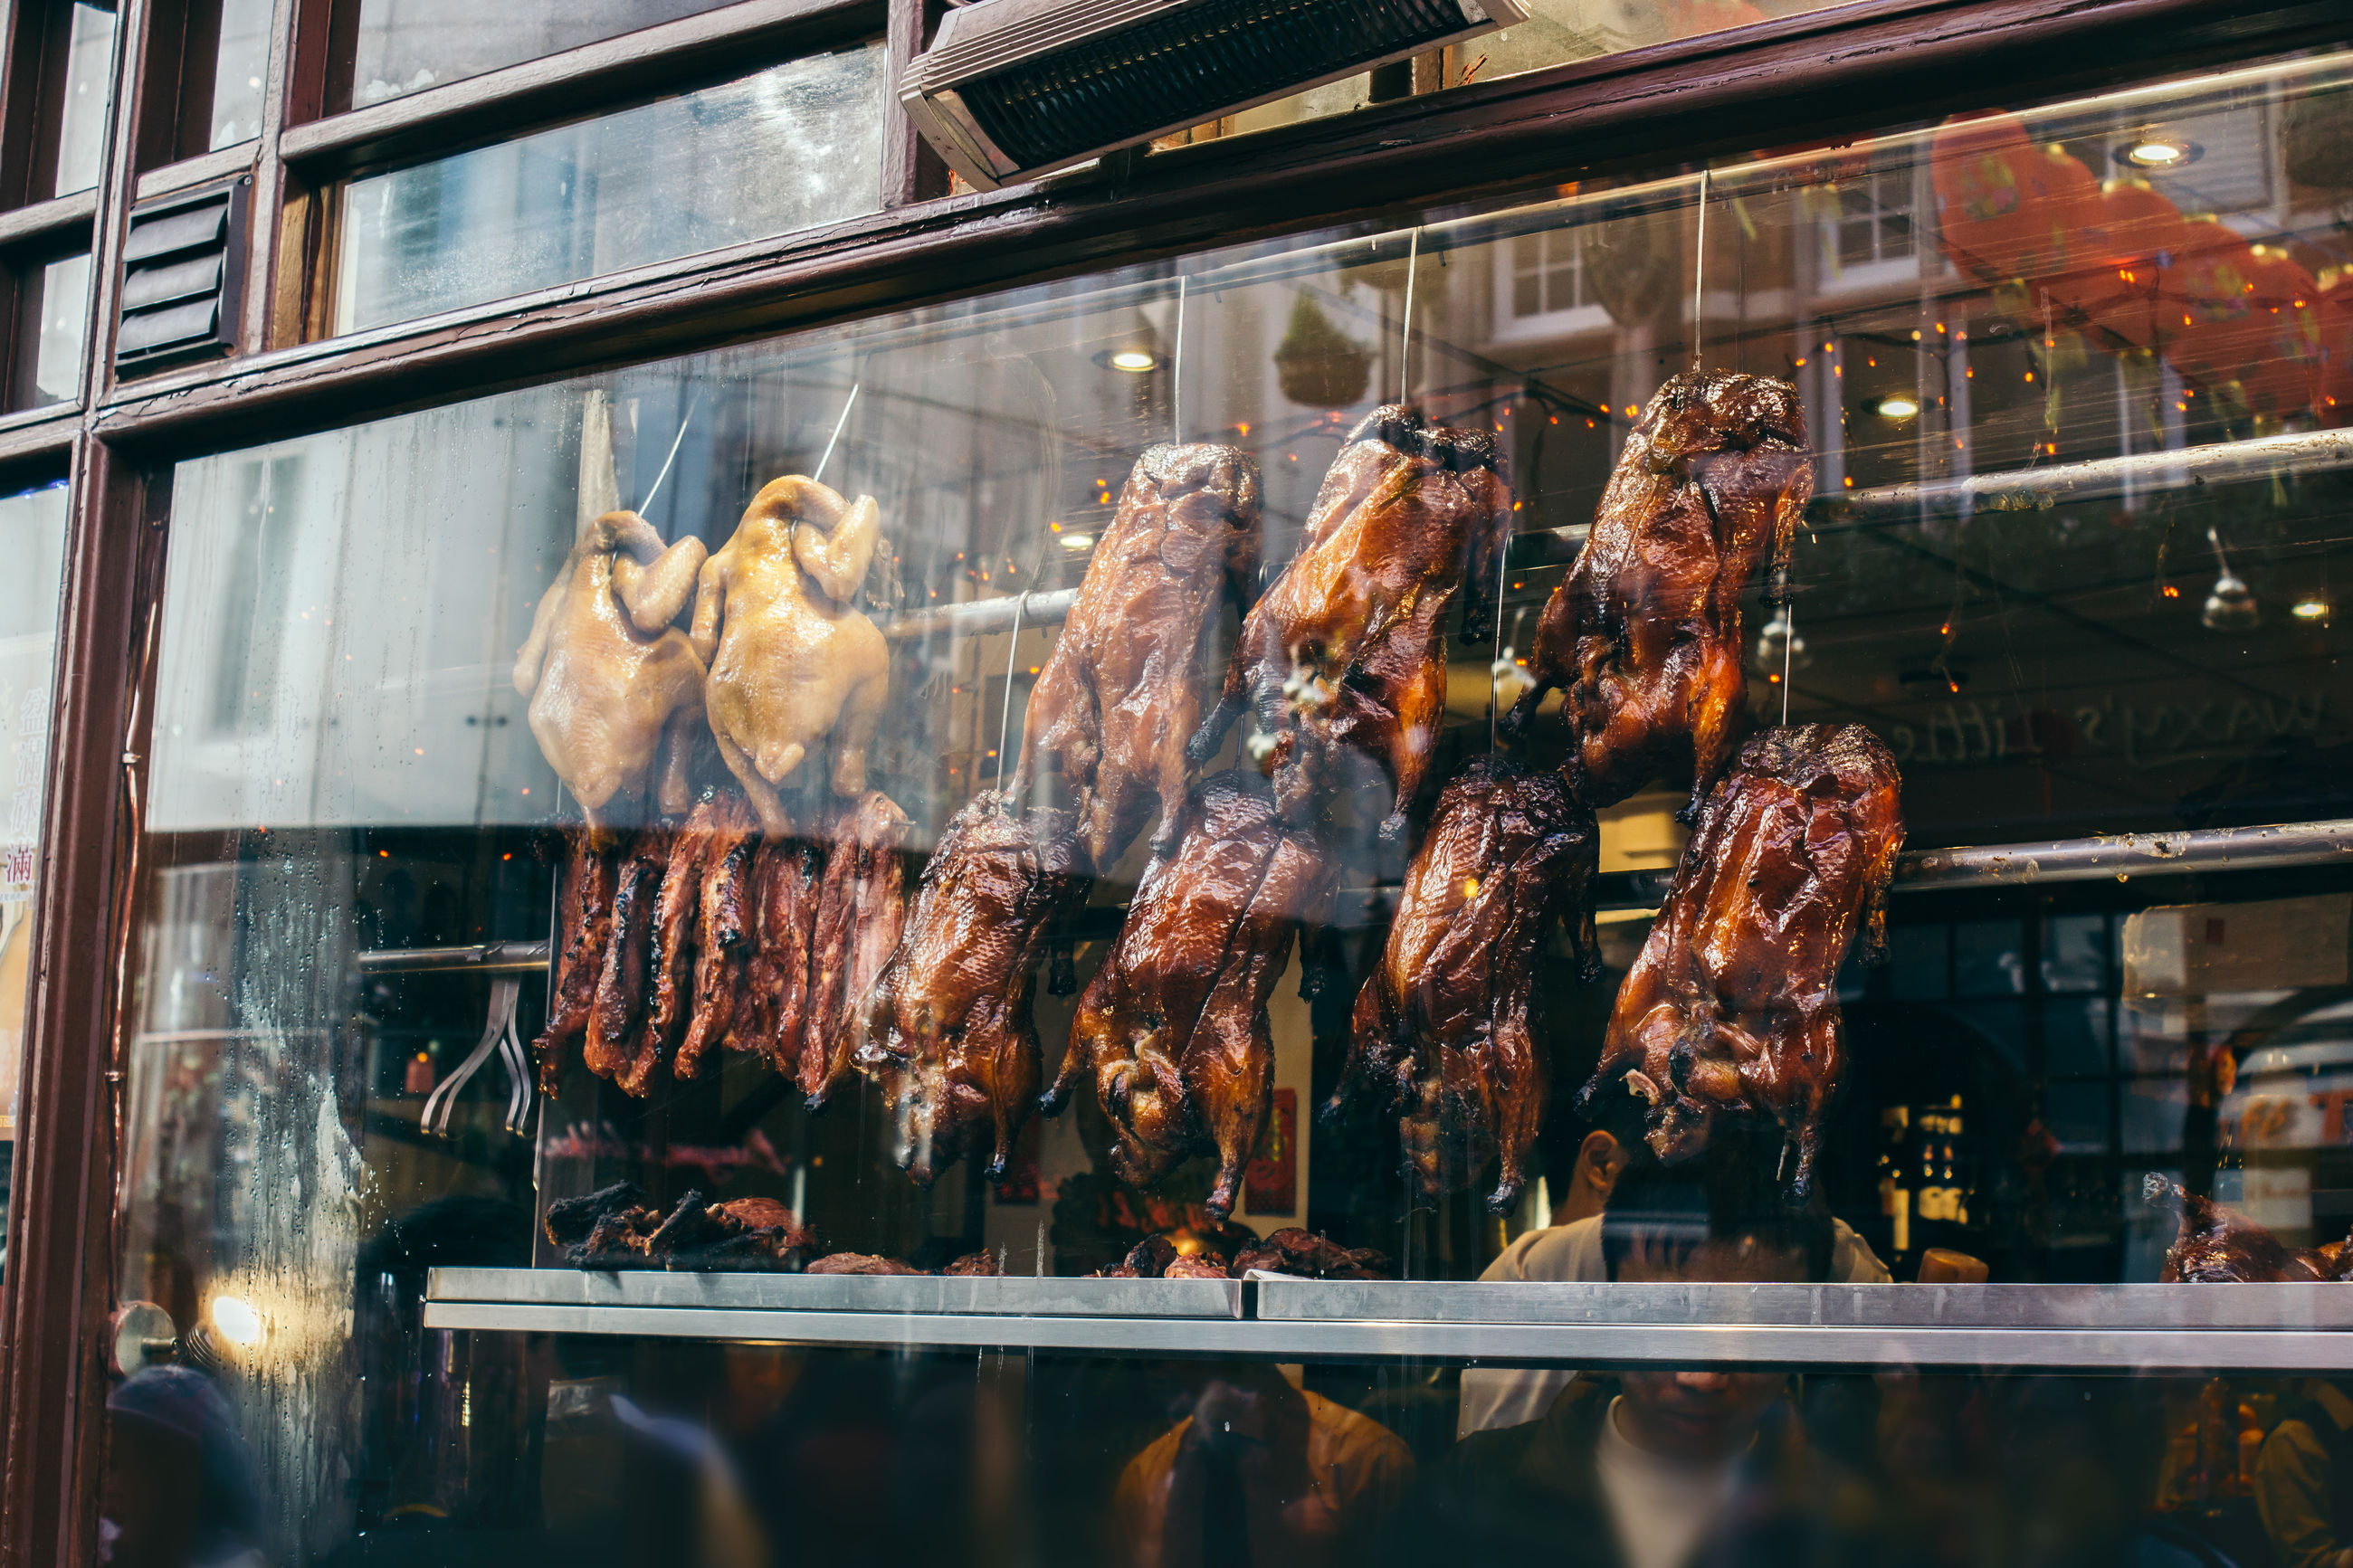 Low angle view of meat hanging in store seen through window